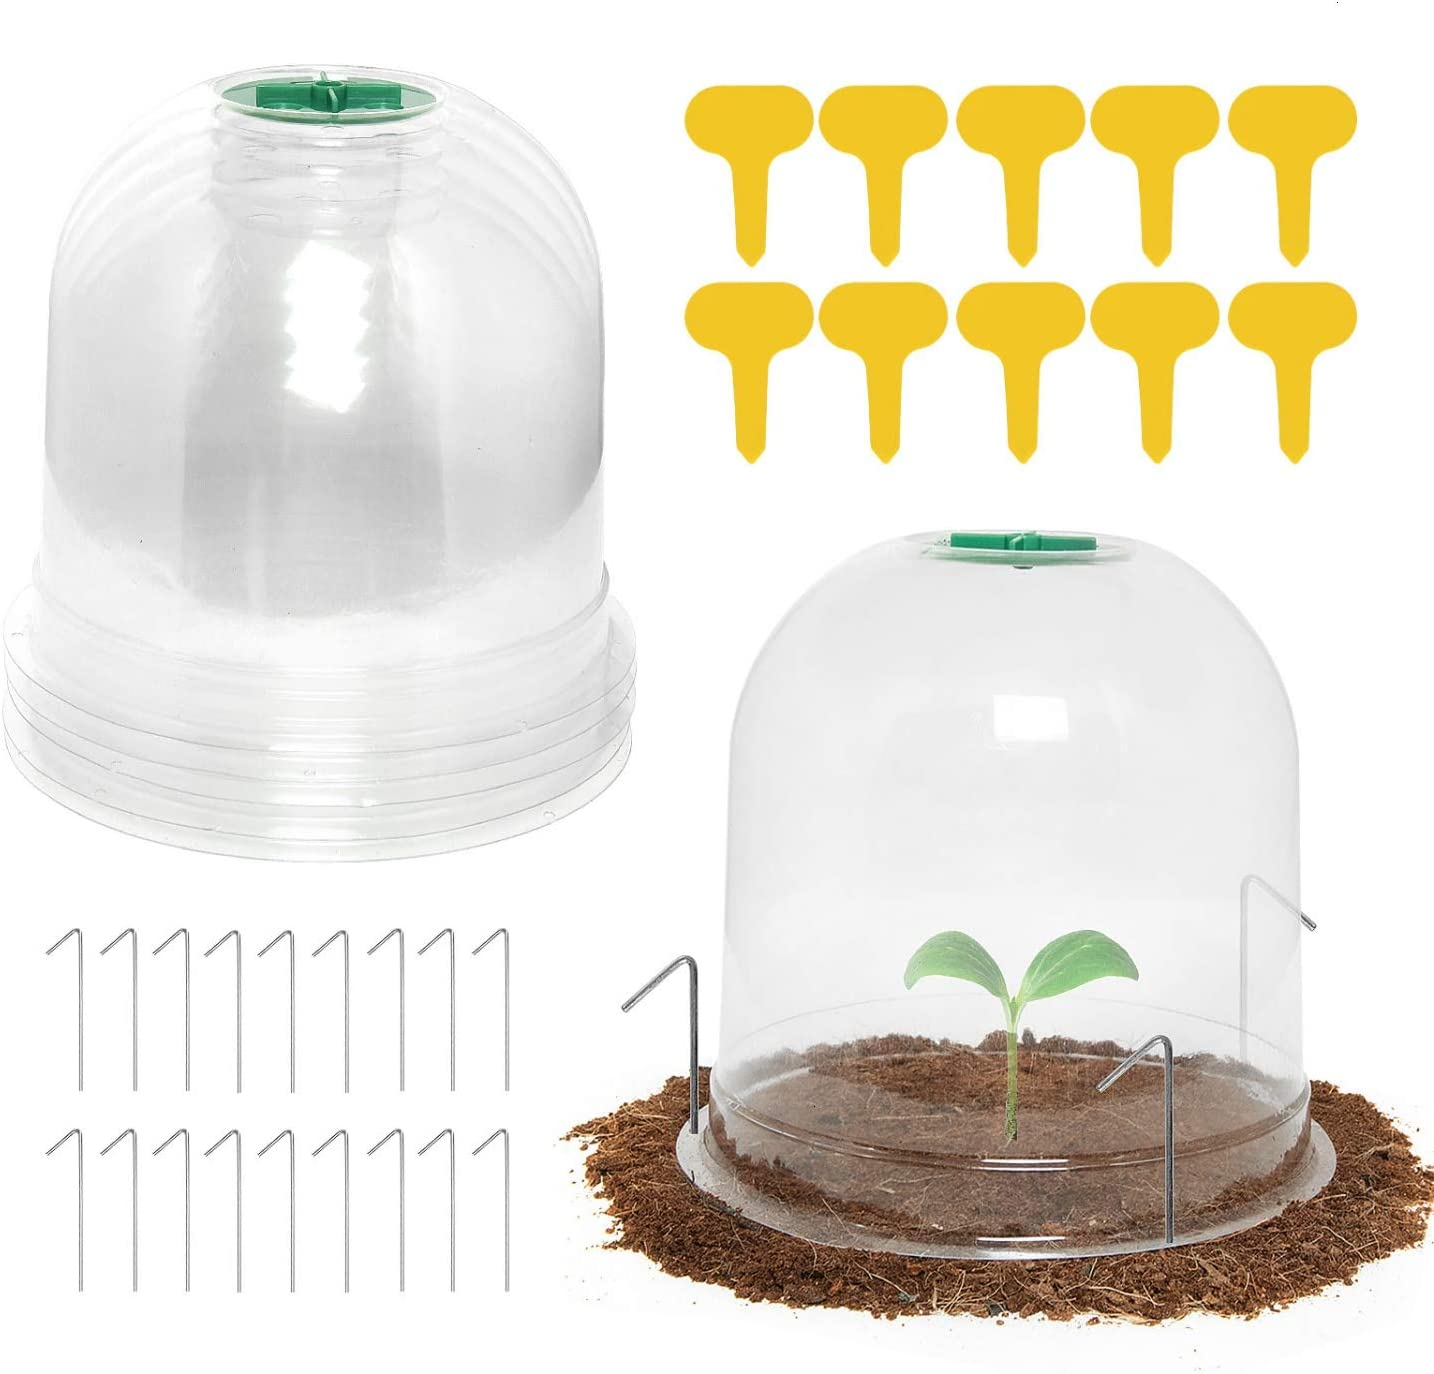 Vumdua Garden Cloche Dome, 6 Pack Plastic Plant Protect Bell Cover Mini Greenhouse with 18 Ground Securing Pegs & 10 Plant Label Outdoor Indoor - Humidity Dome for Seed Starter Pots (7.3